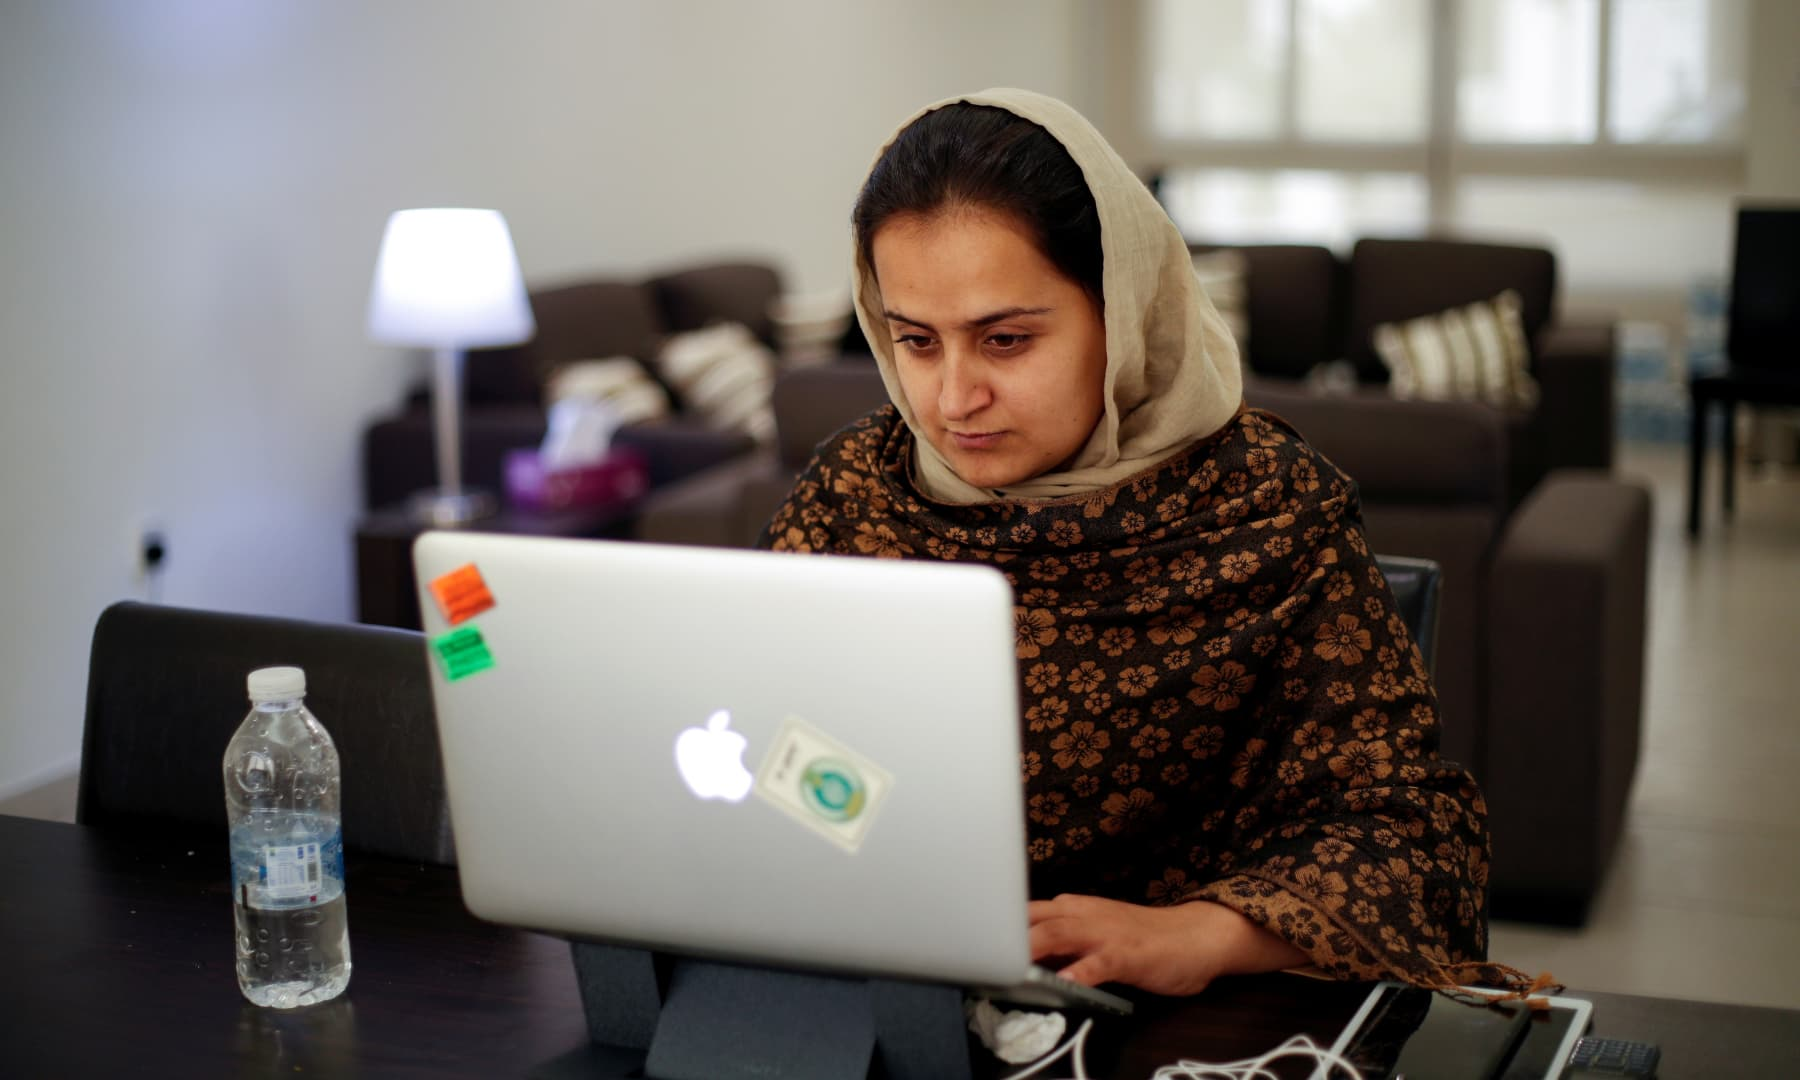 Afghan news anchor Beheshta Arghand works on a laptop at a temporary residence compound in Doha, Qatar on September 1, 2021. — Reuters